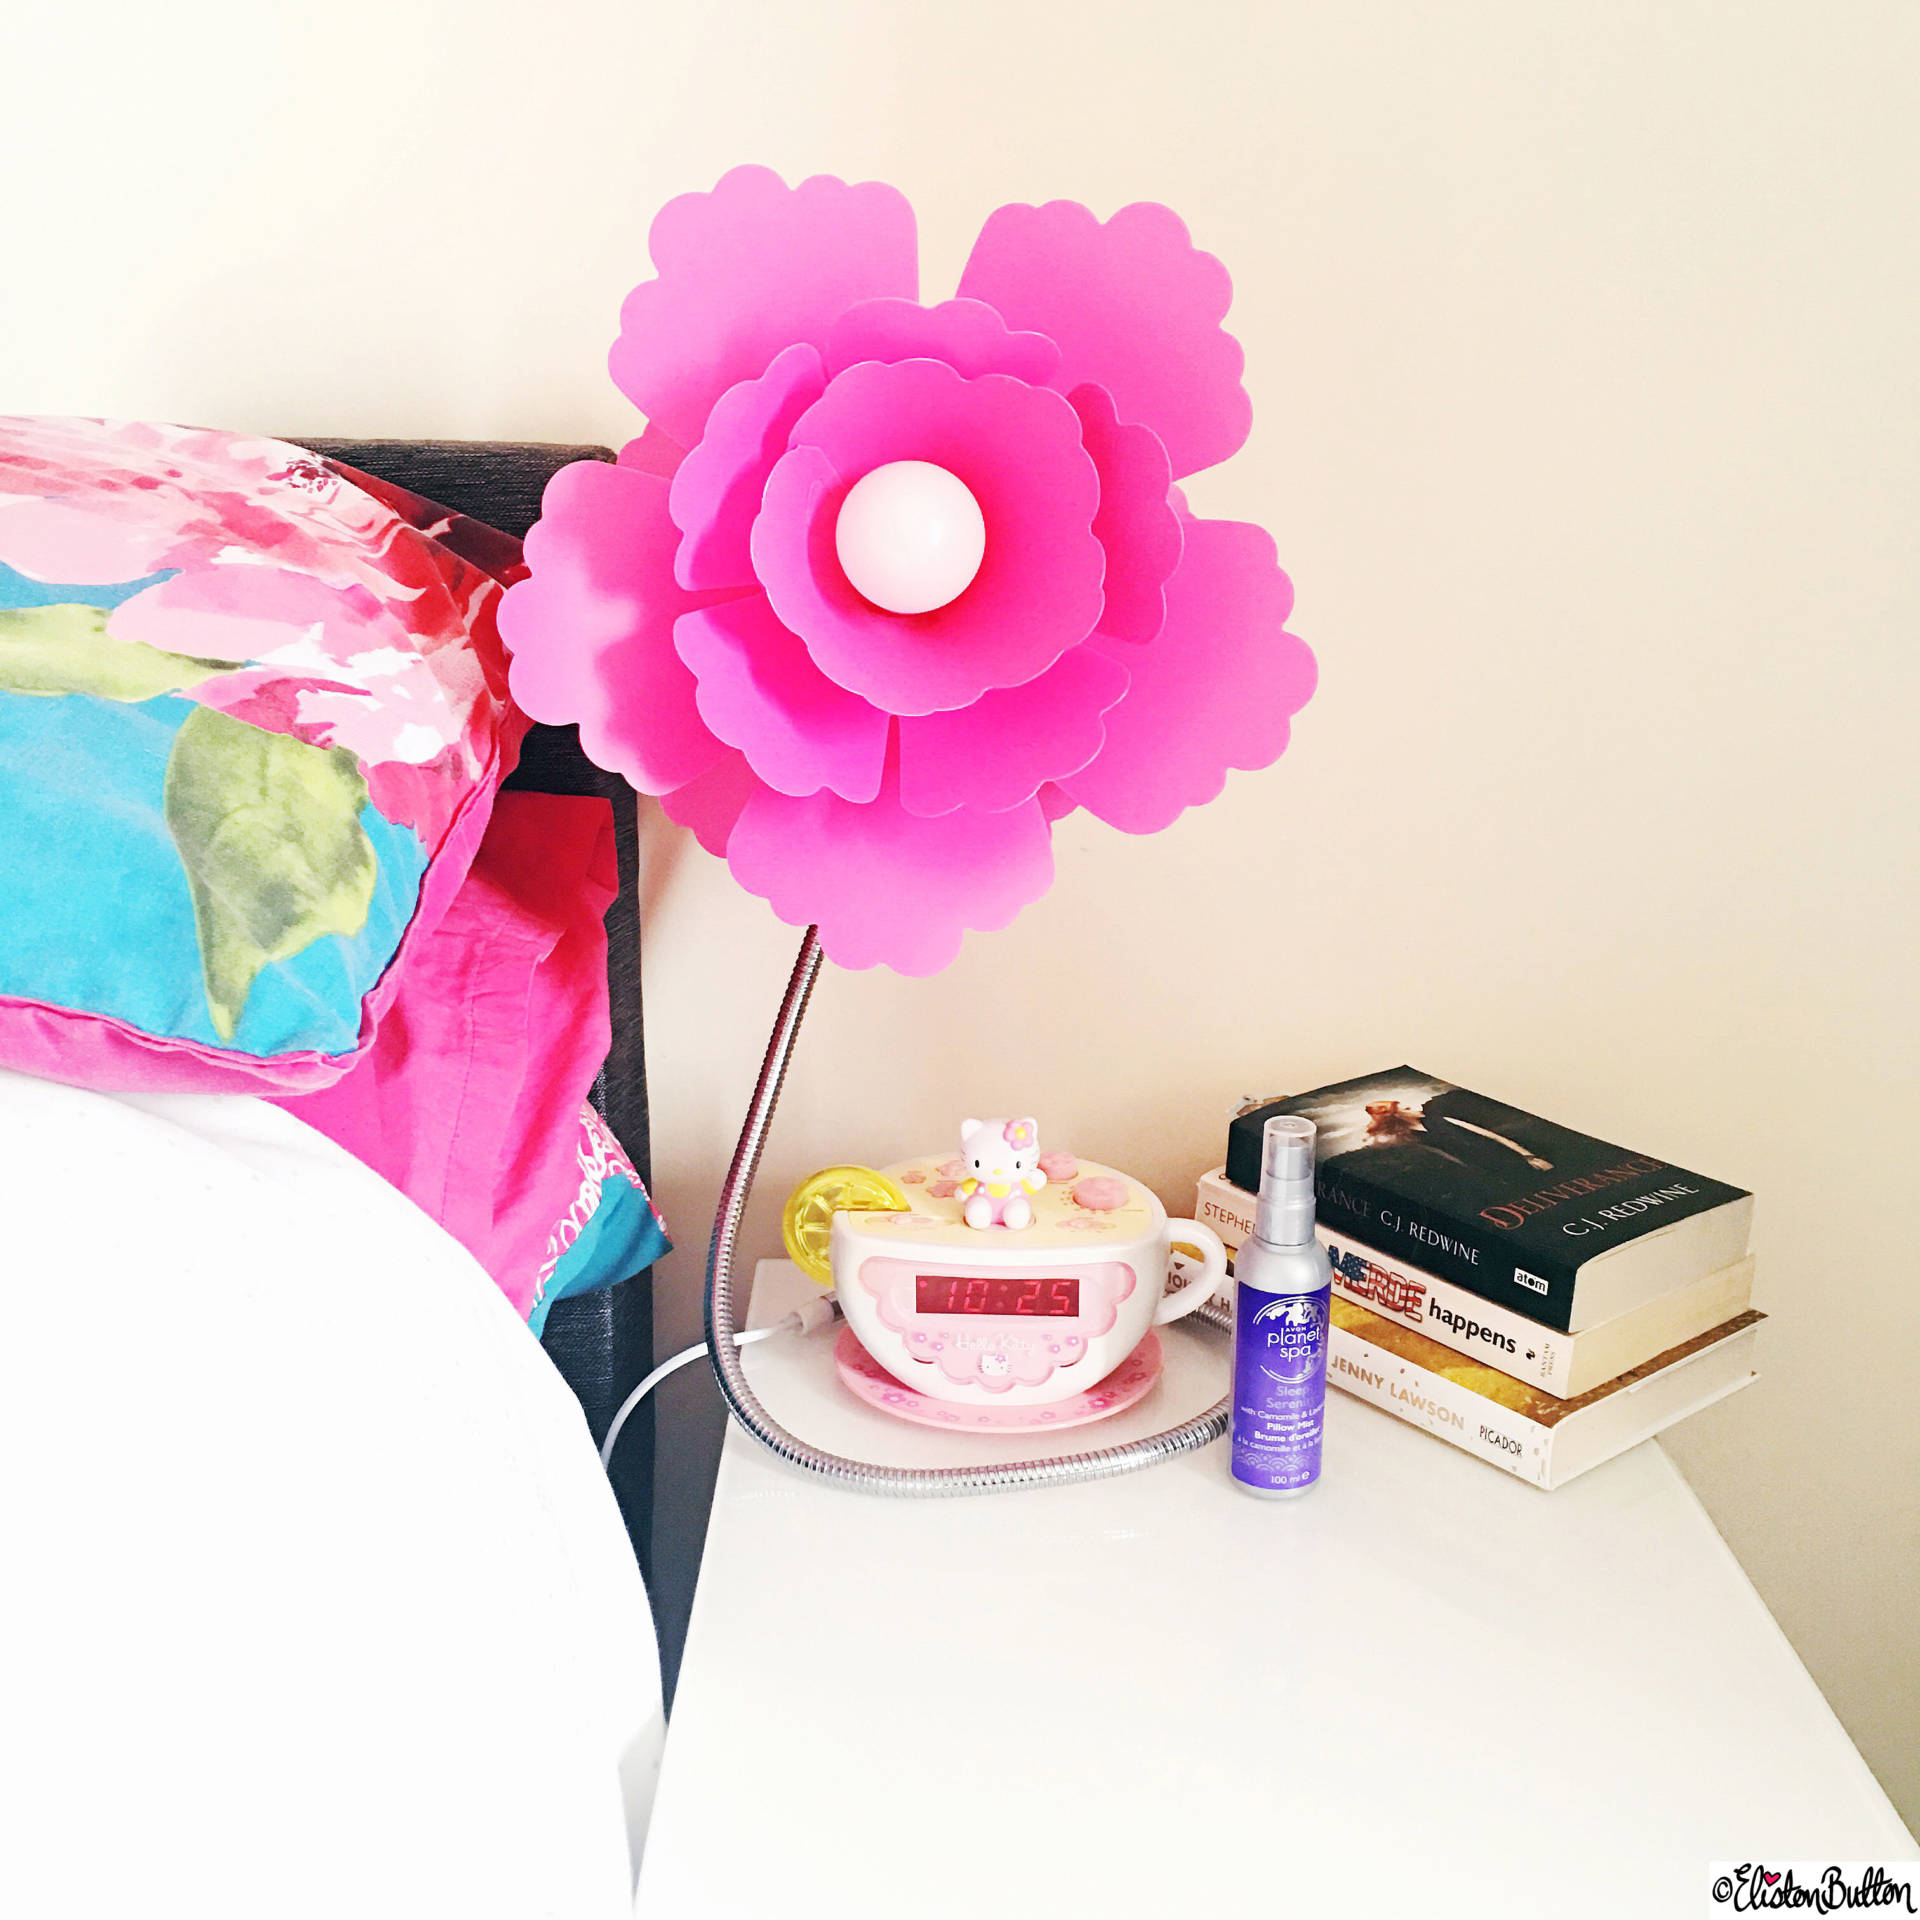 Day 28 - View From Bed - Pink Flower Lamp, Books and Hello Kitty Alarm Clock - Photo-a-Day – May 2016 at www.elistonbutton.com - Eliston Button - That Crafty Kid – Art, Design, Craft & Adventure.